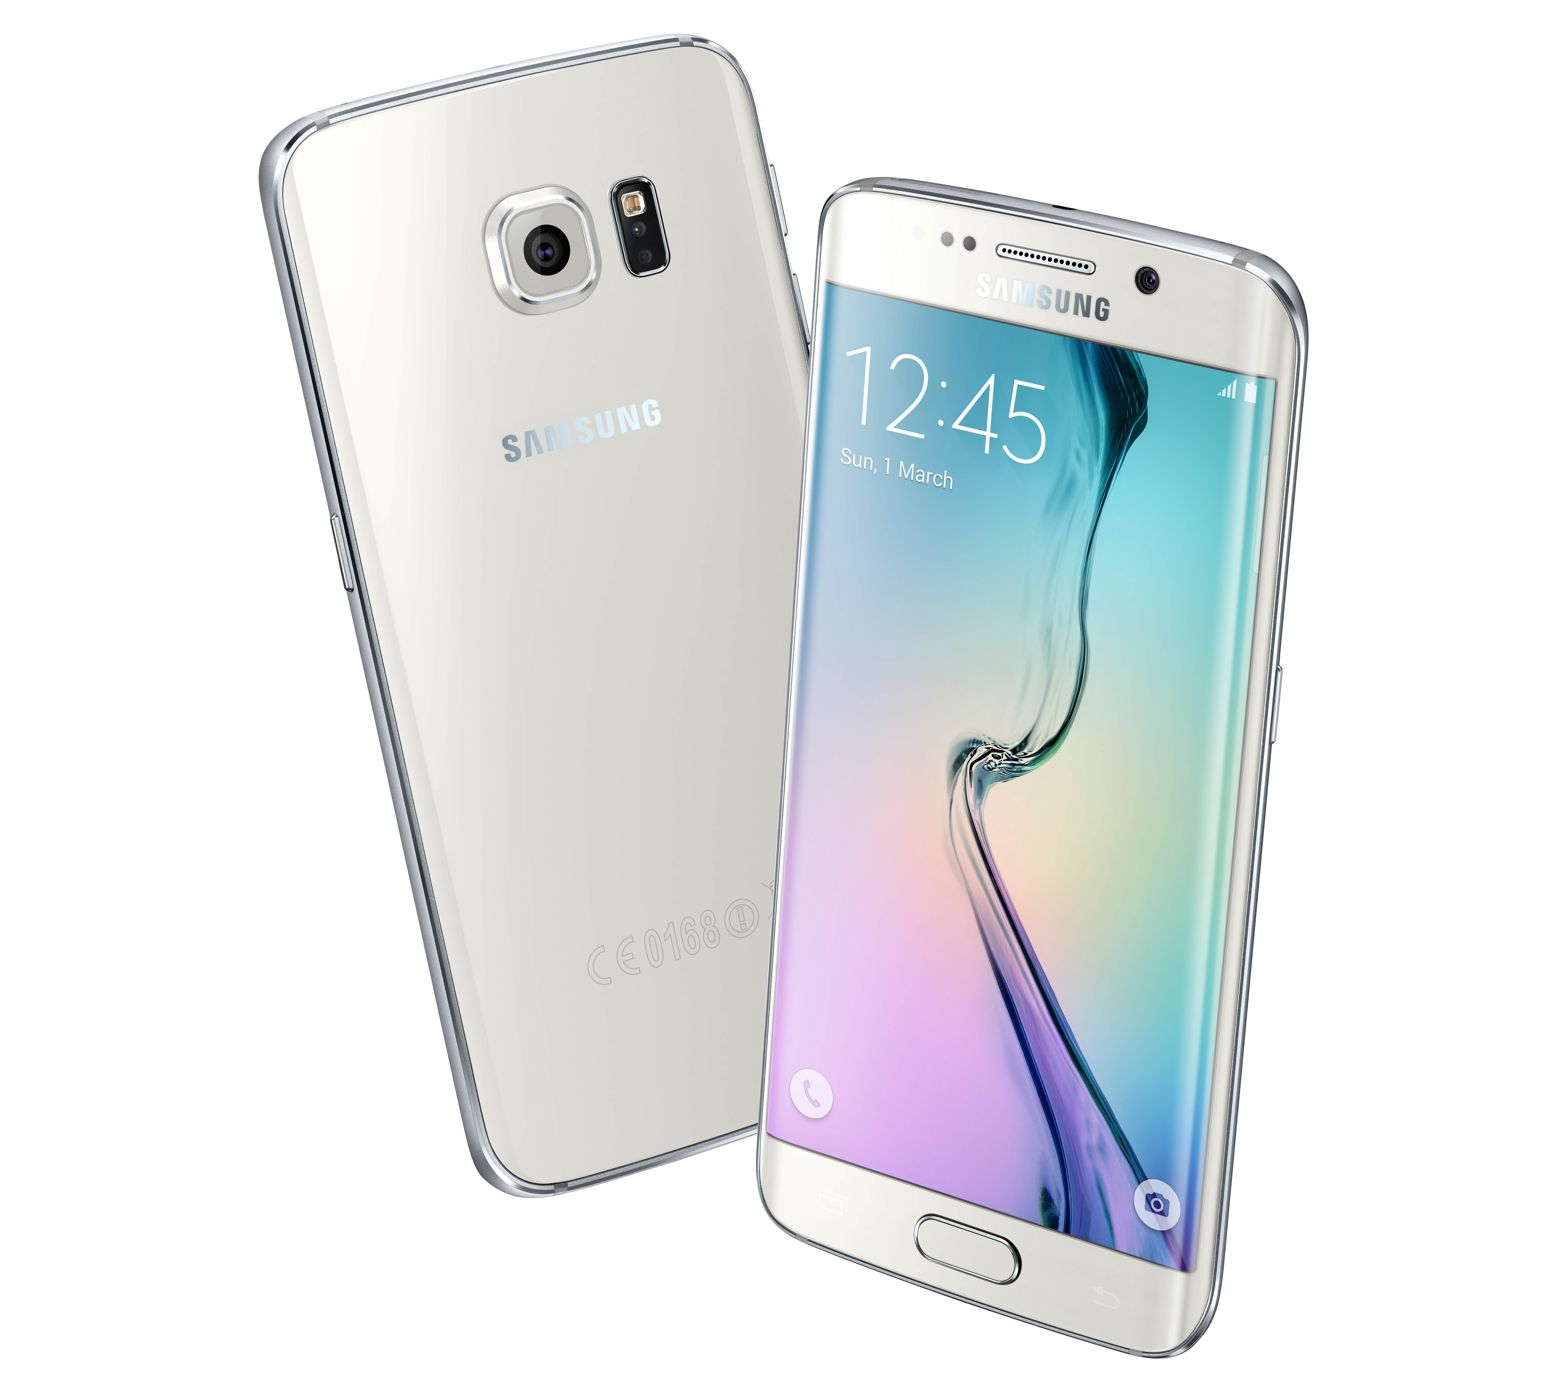 Samsung Upcoming mobile phone 'Samsung Galaxy S6 Mini' Price, launch date in Canada With specifications Camera, Battery, Display etc on Upcoming Wiki